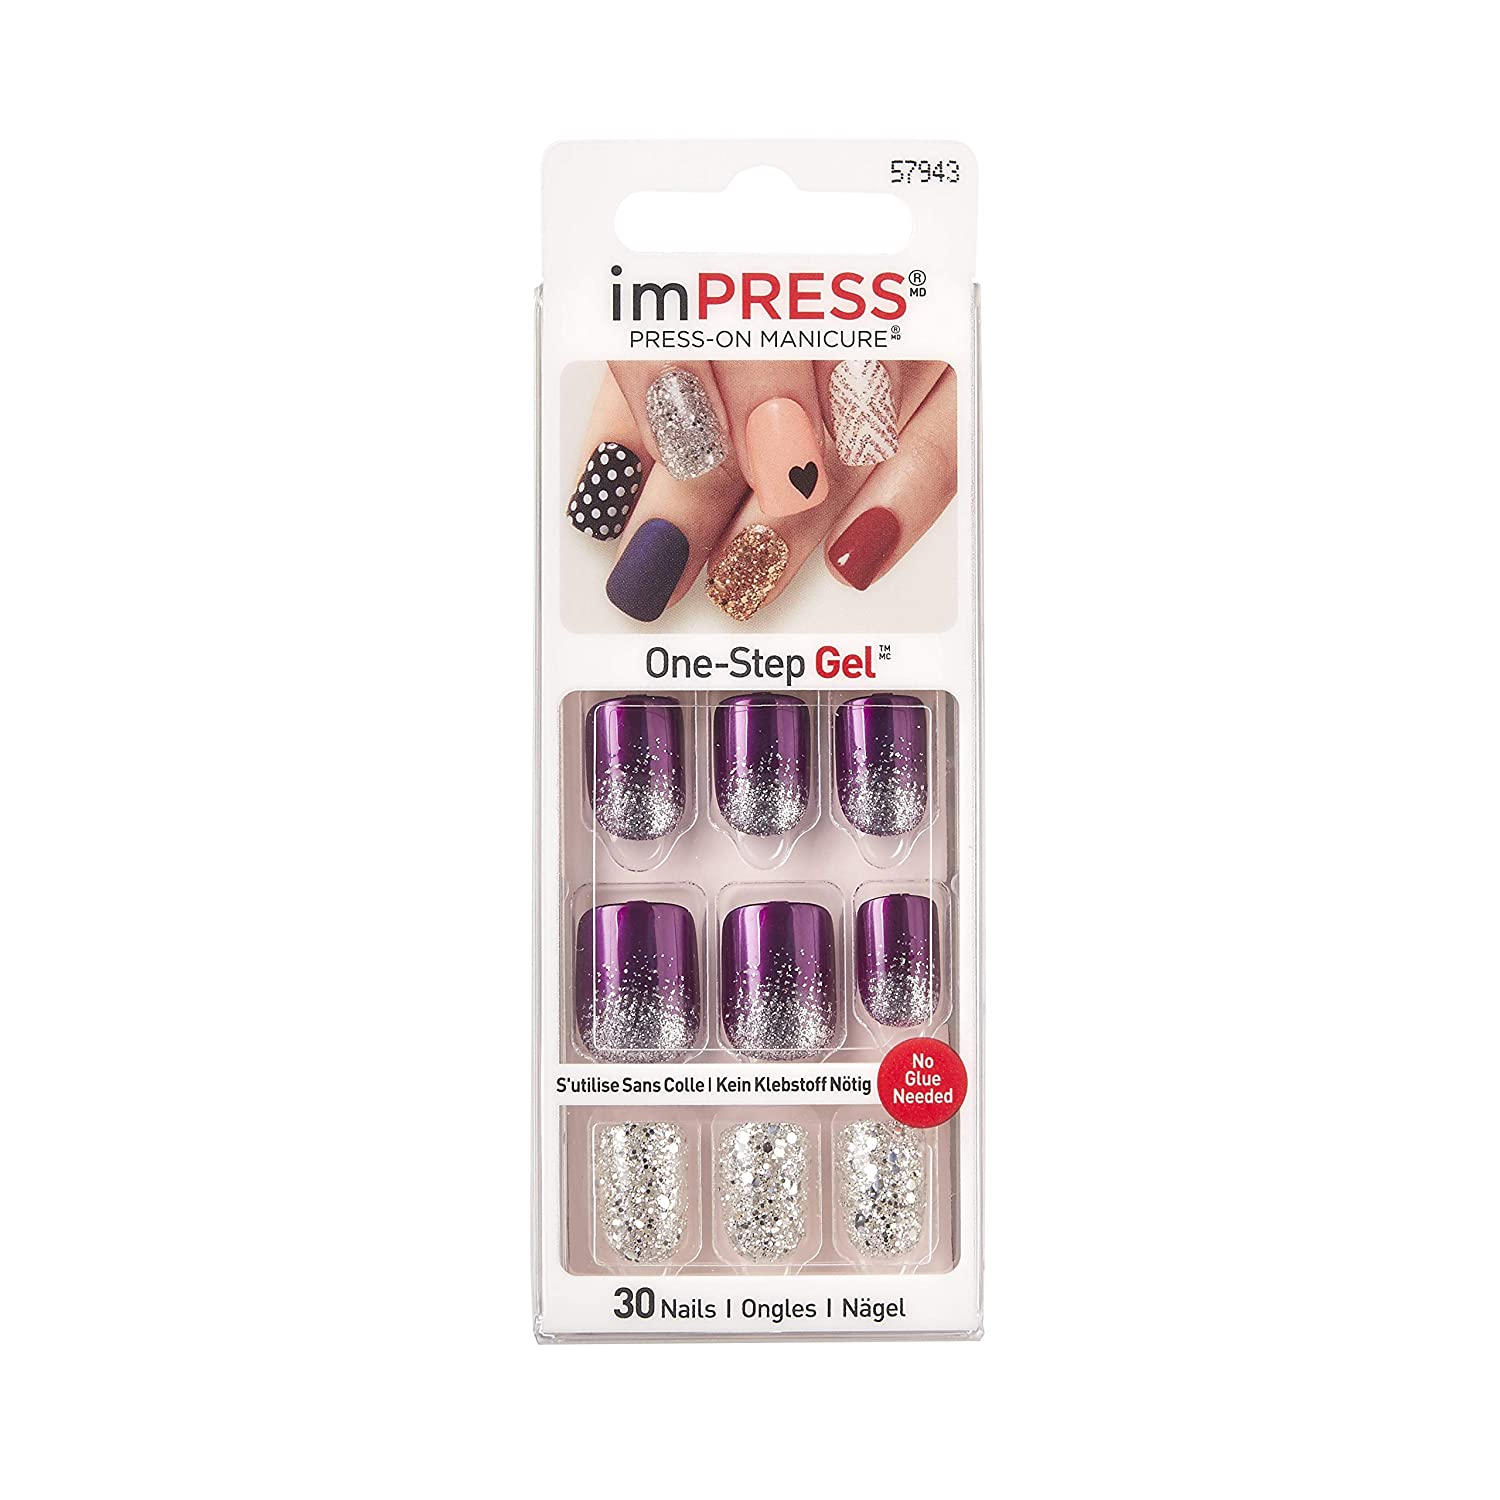 Broadway Nails Impress Night Fever, 1 Pack (1 x 24 Pieces) Kiss Products Inc BIPD051